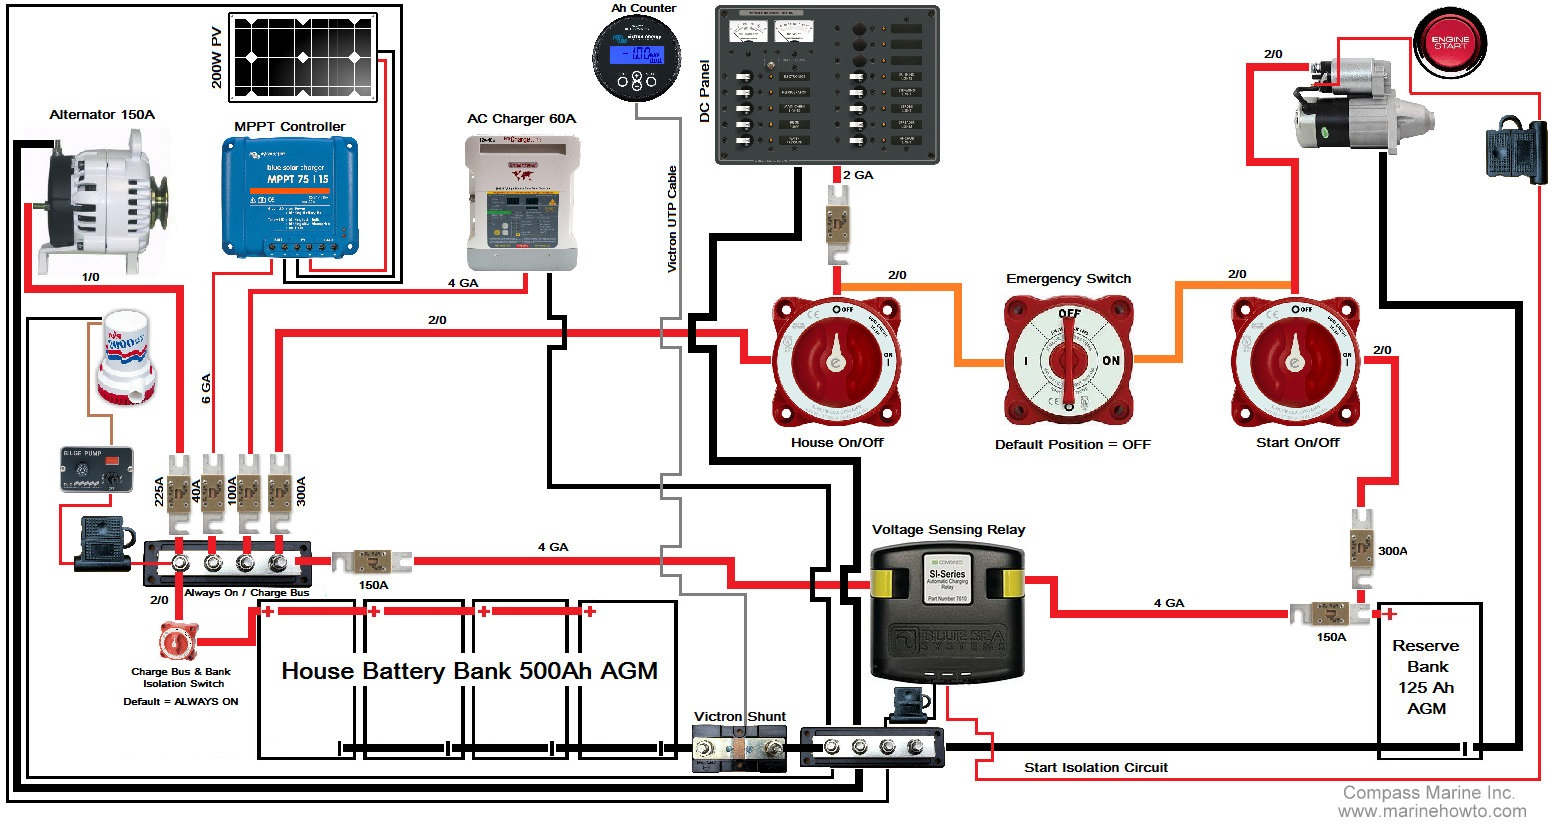 electric circuit diagram software page 2 cruisers sailing this image has been resized click this bar to view the full image the original image is sized %1%2